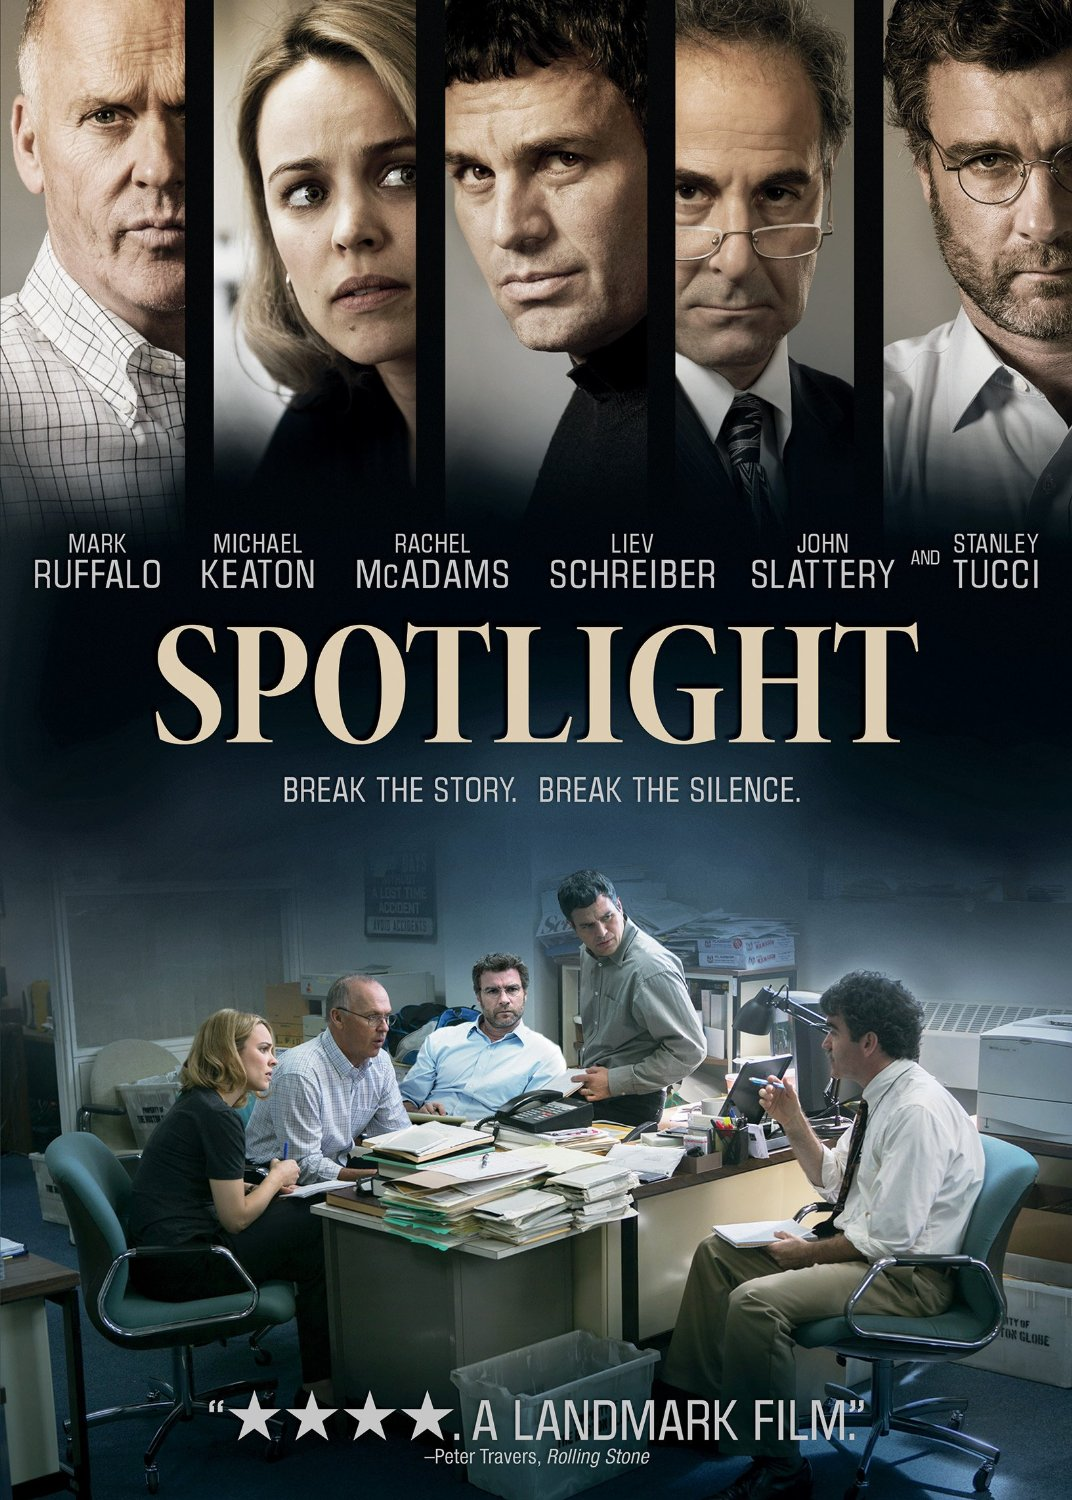 Spotlight (2015) Movie Poster Google image from http://library.hsmc.edu.hk/images/dvd_cover/000254347.jpg